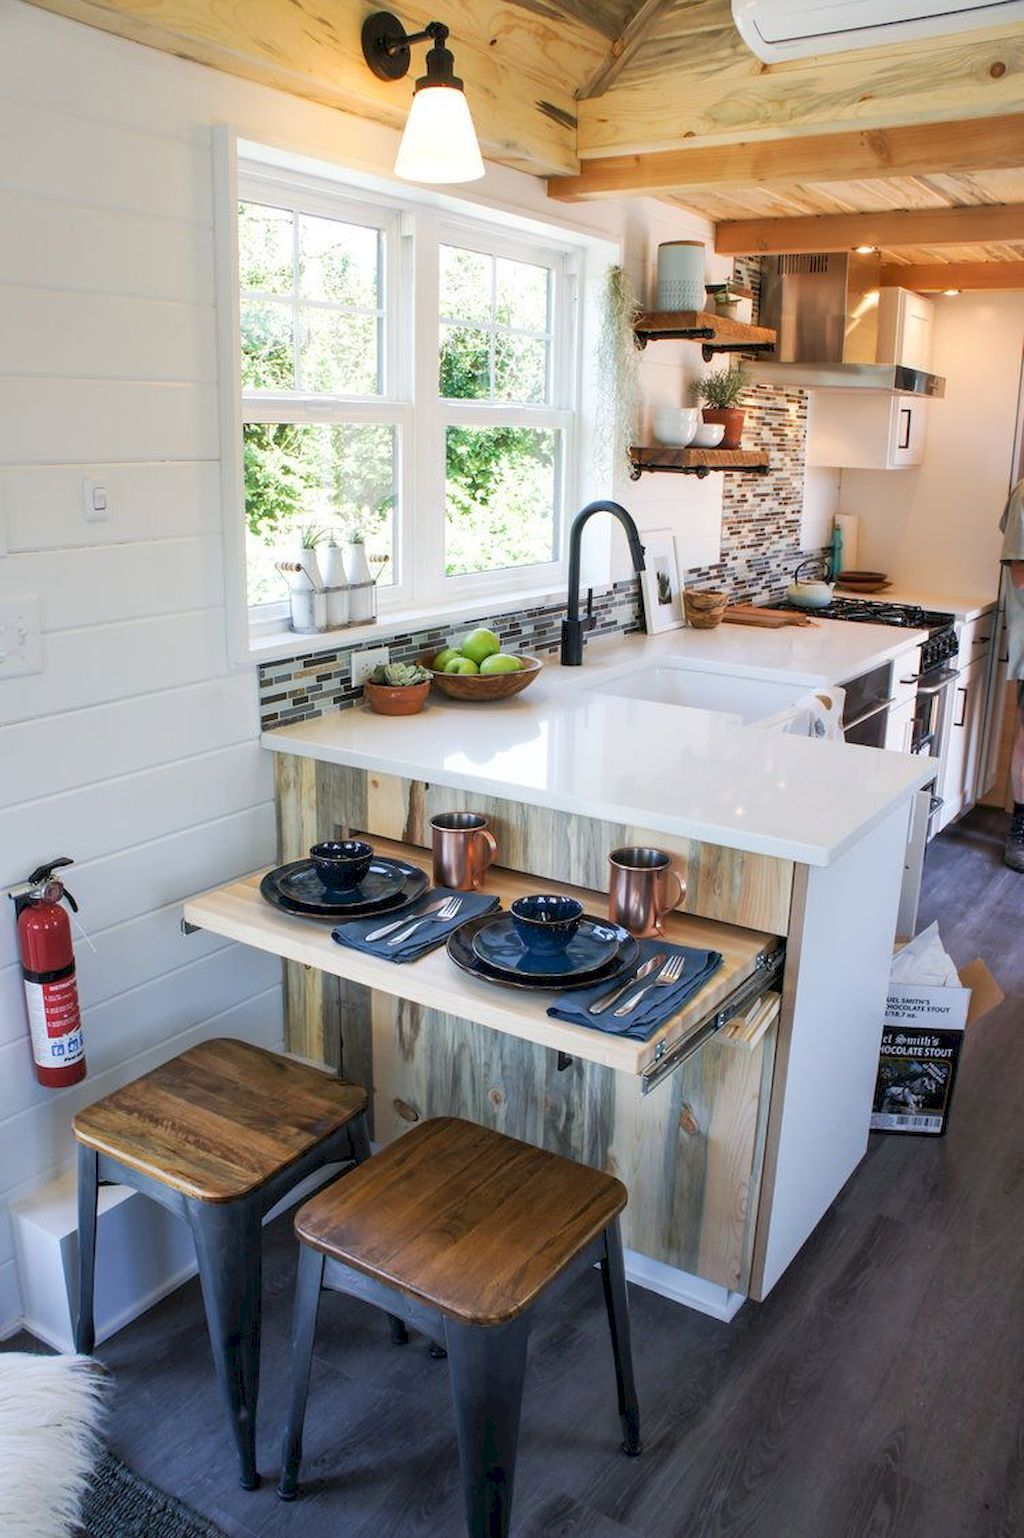 10 Kitchen And Home Decor Items Every 20 Something Needs: The 11 Tiny House Kitchens That'll Make You Rethink Big